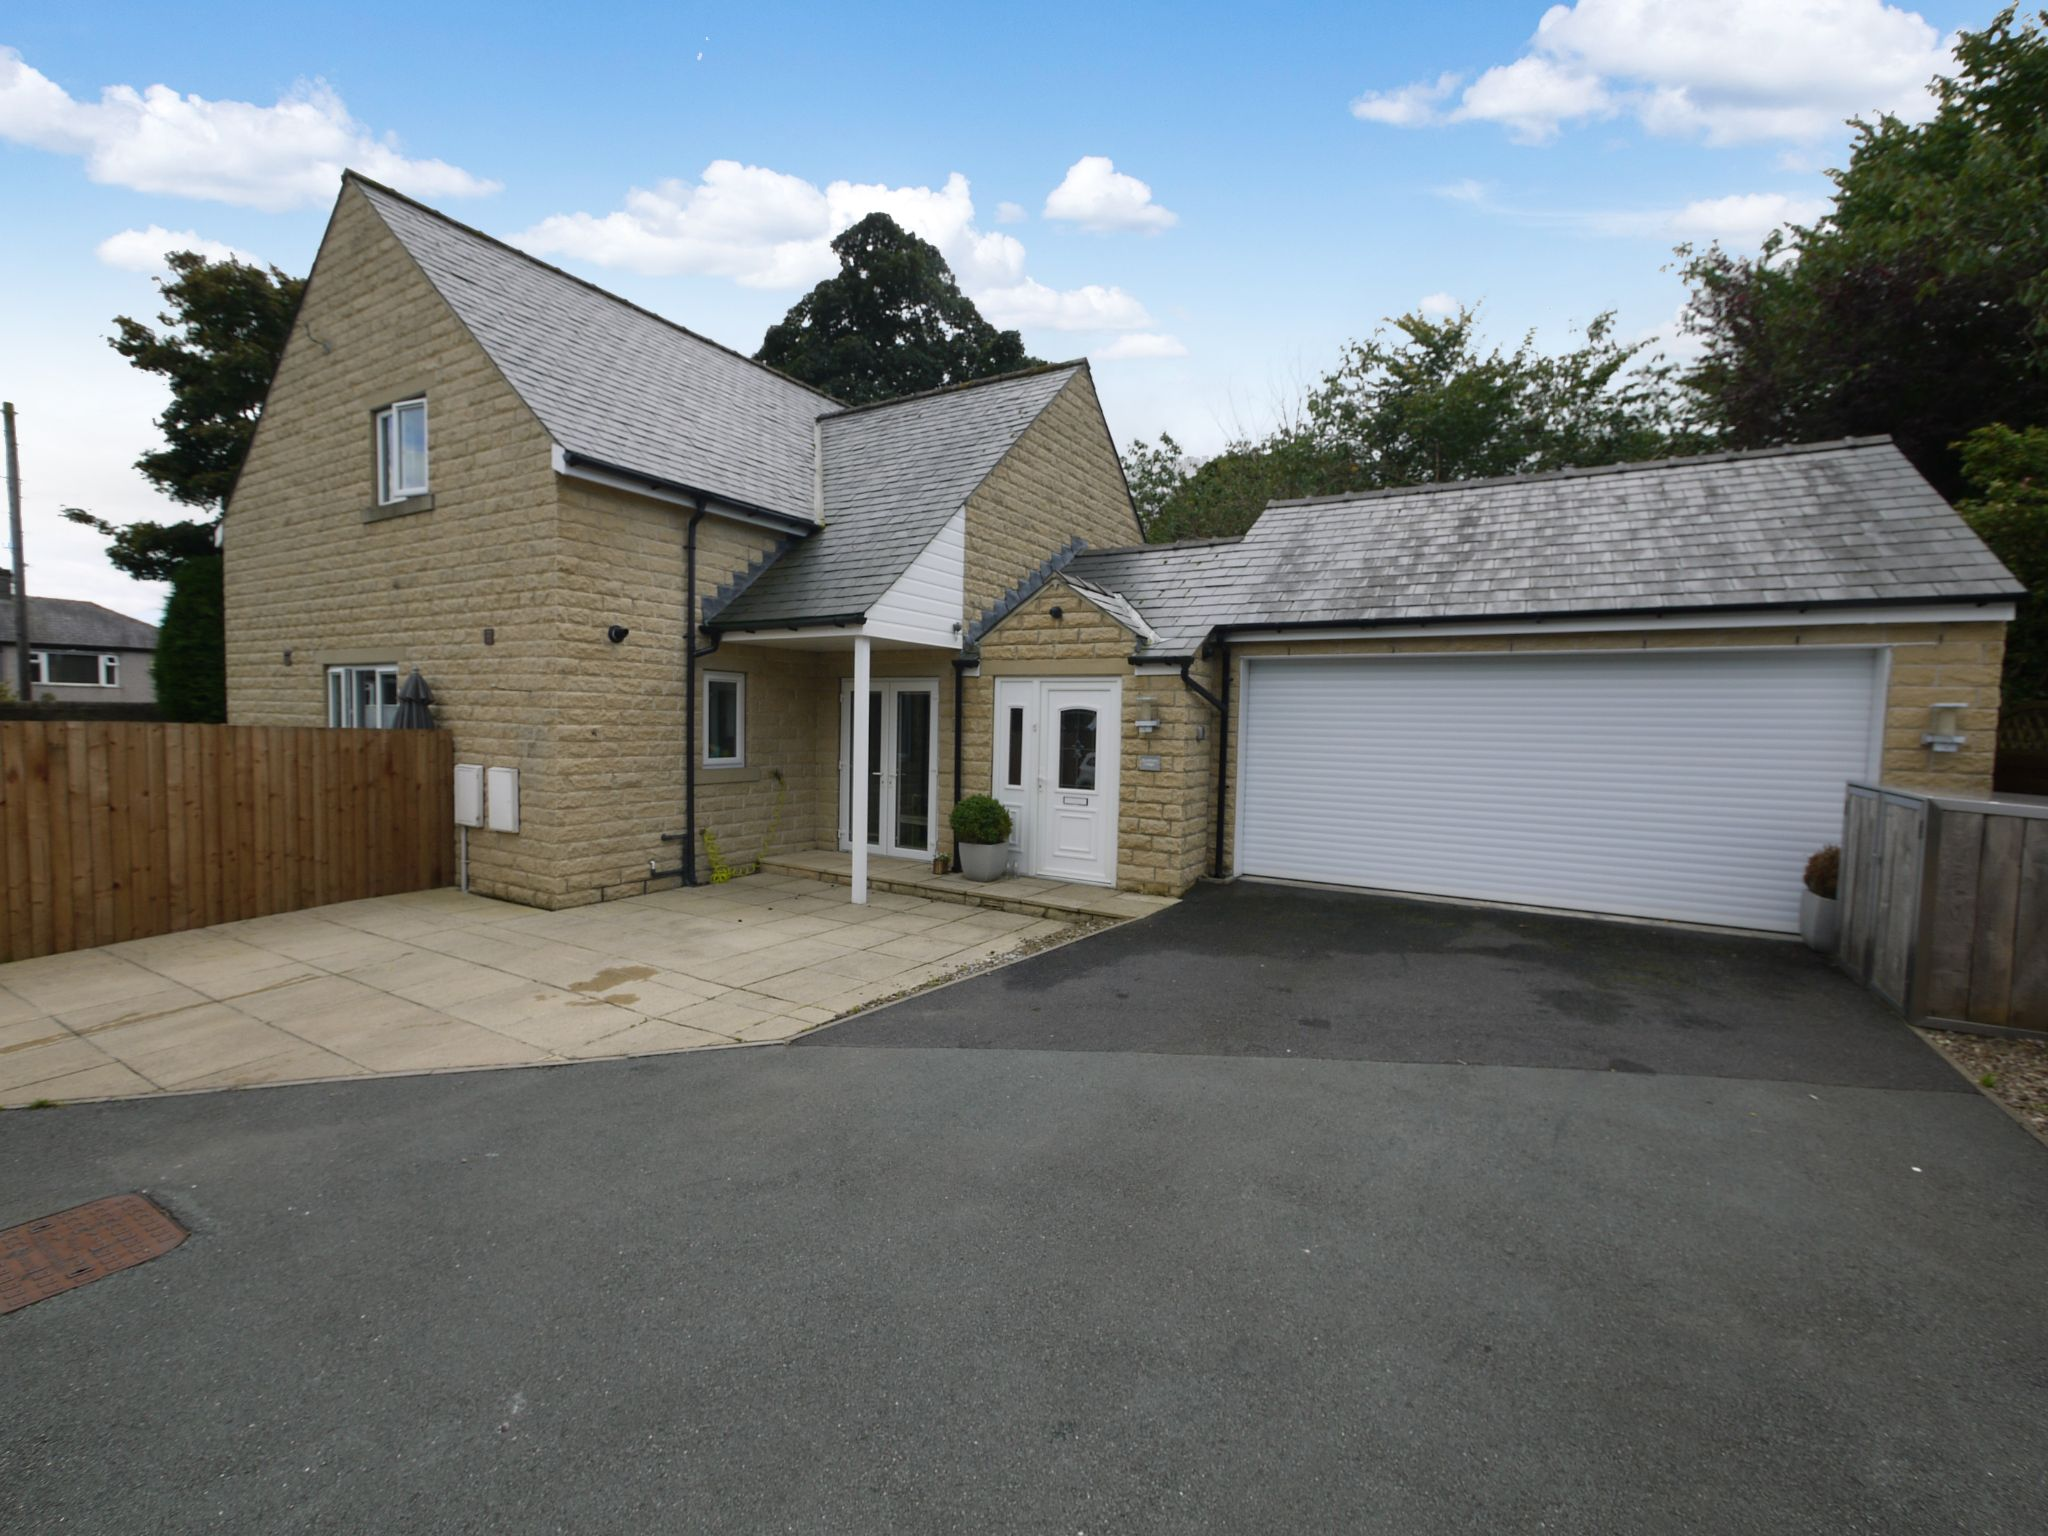 4 bedroom detached house For Sale in Halifax - Main.